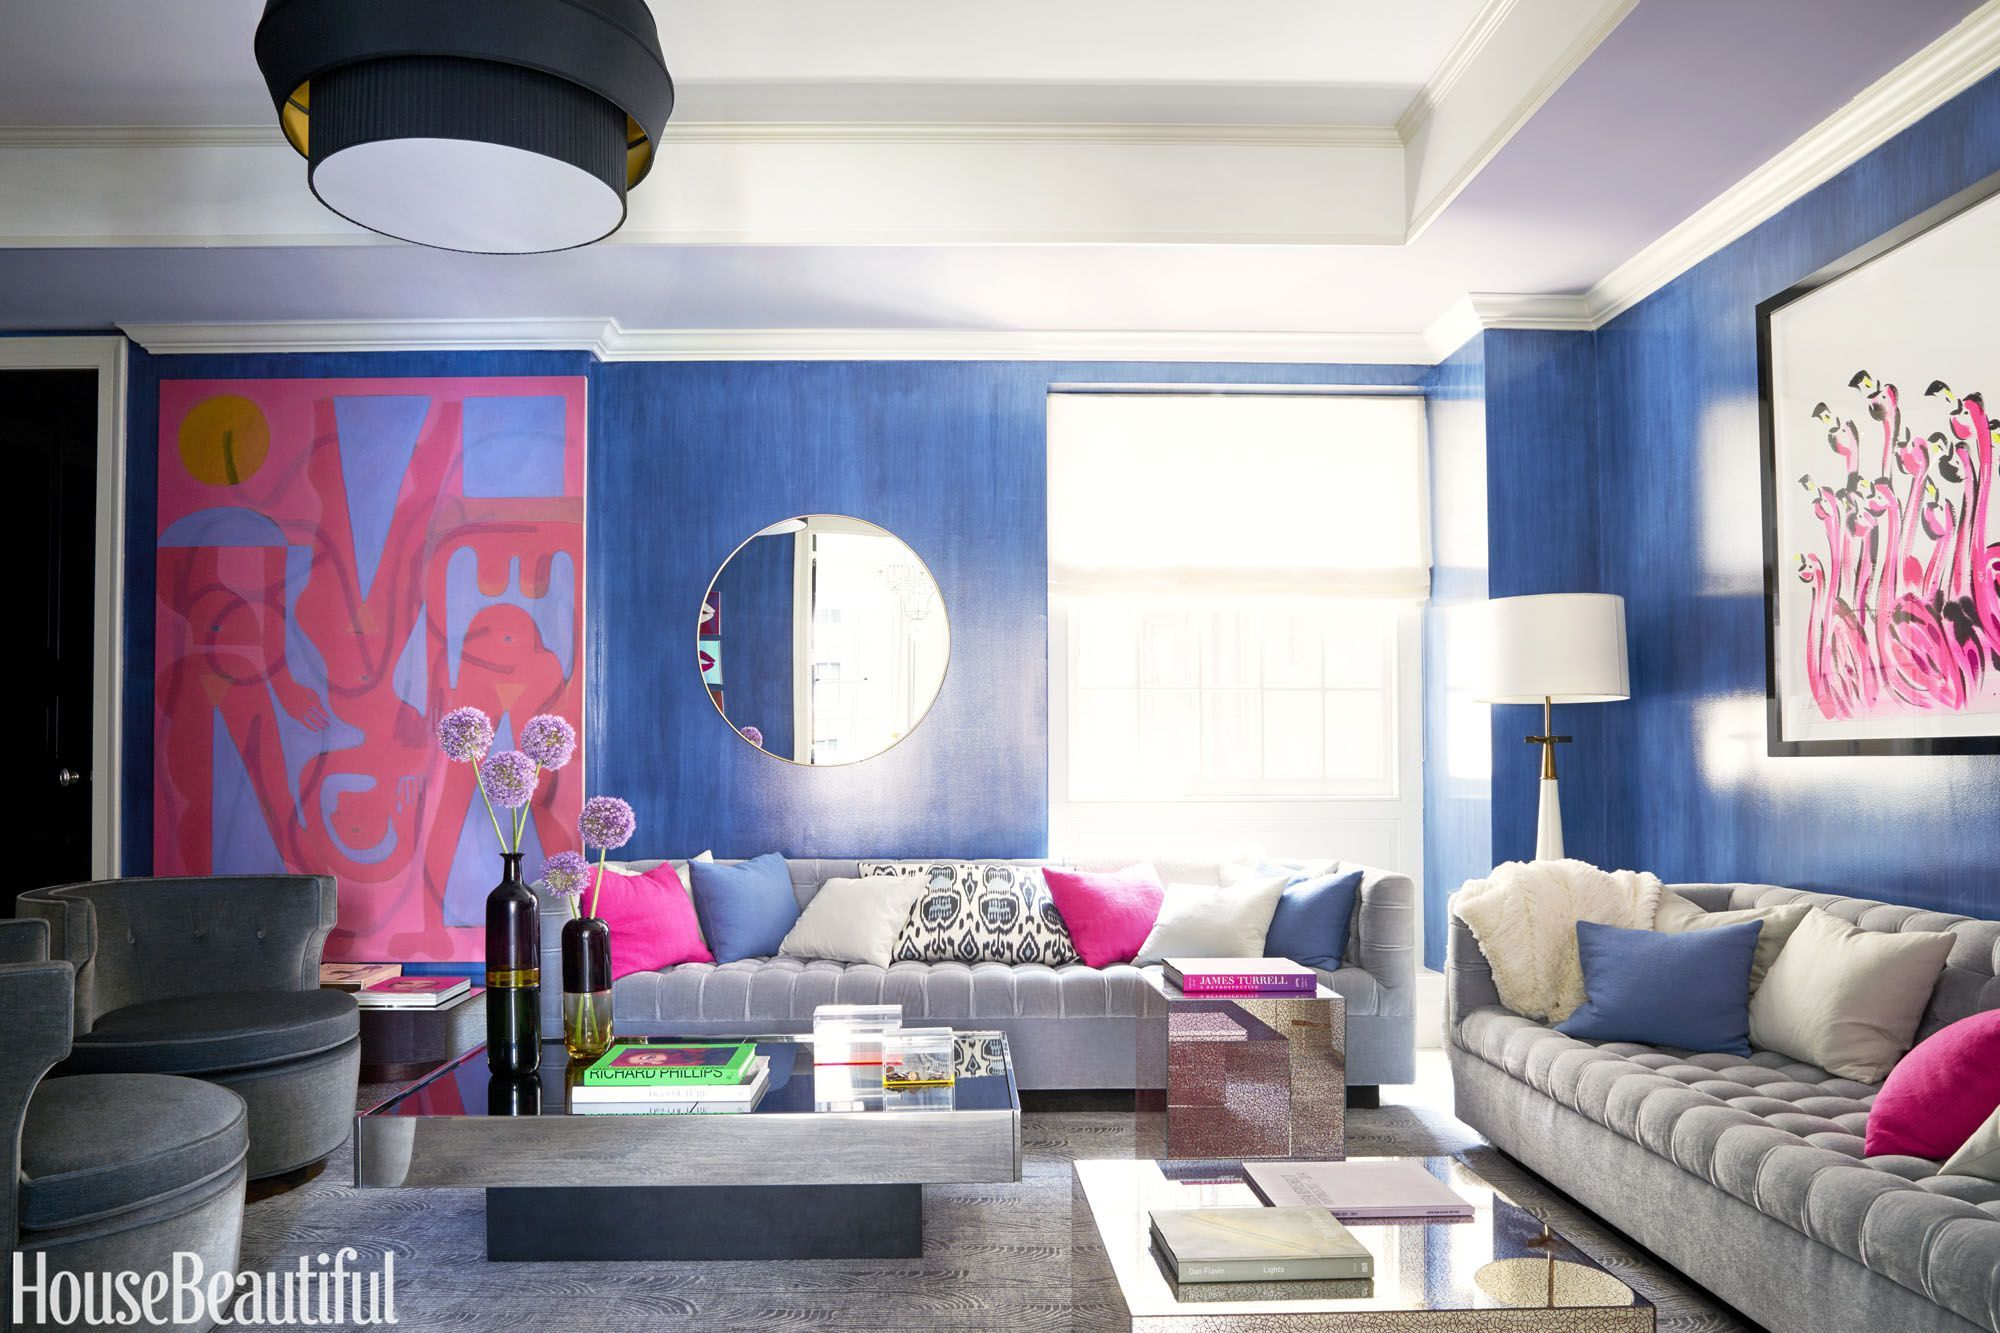 Living room paint color ideas & 15 Best Living Room Color Ideas - Top Paint Colors for Living Rooms